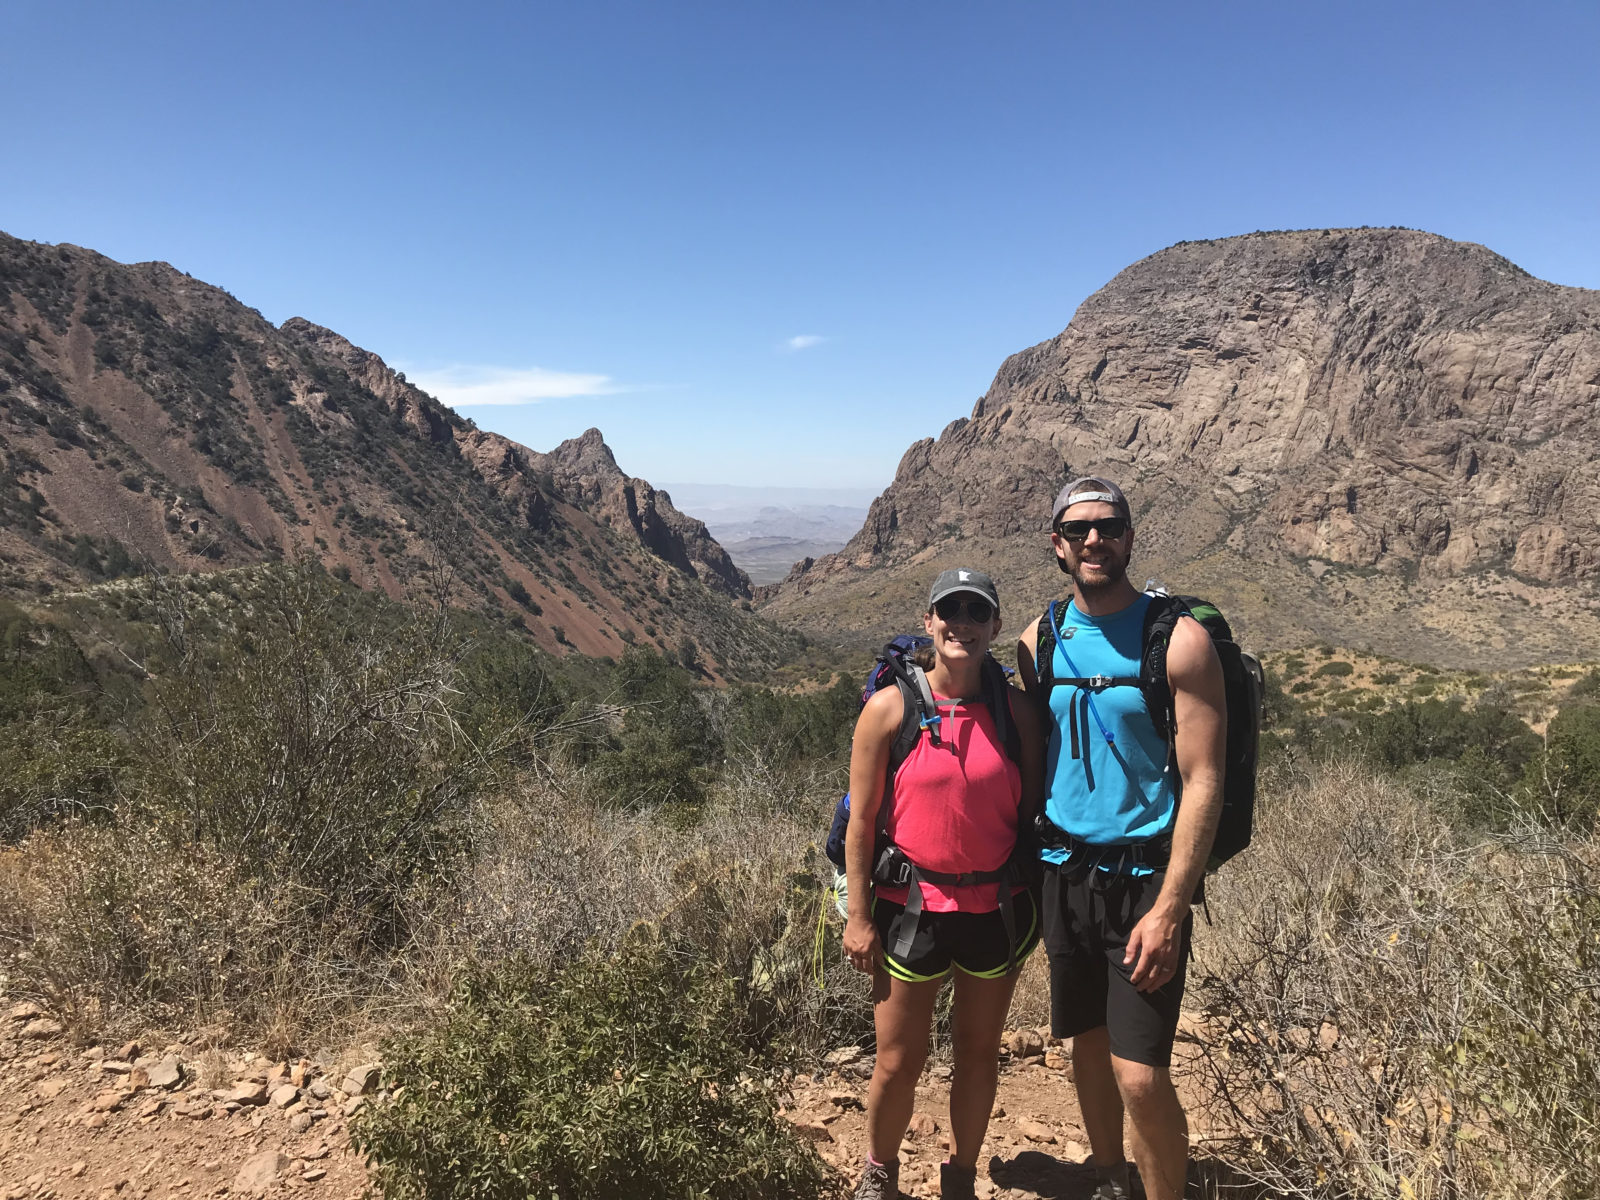 Hiking in the Chisos Mountains